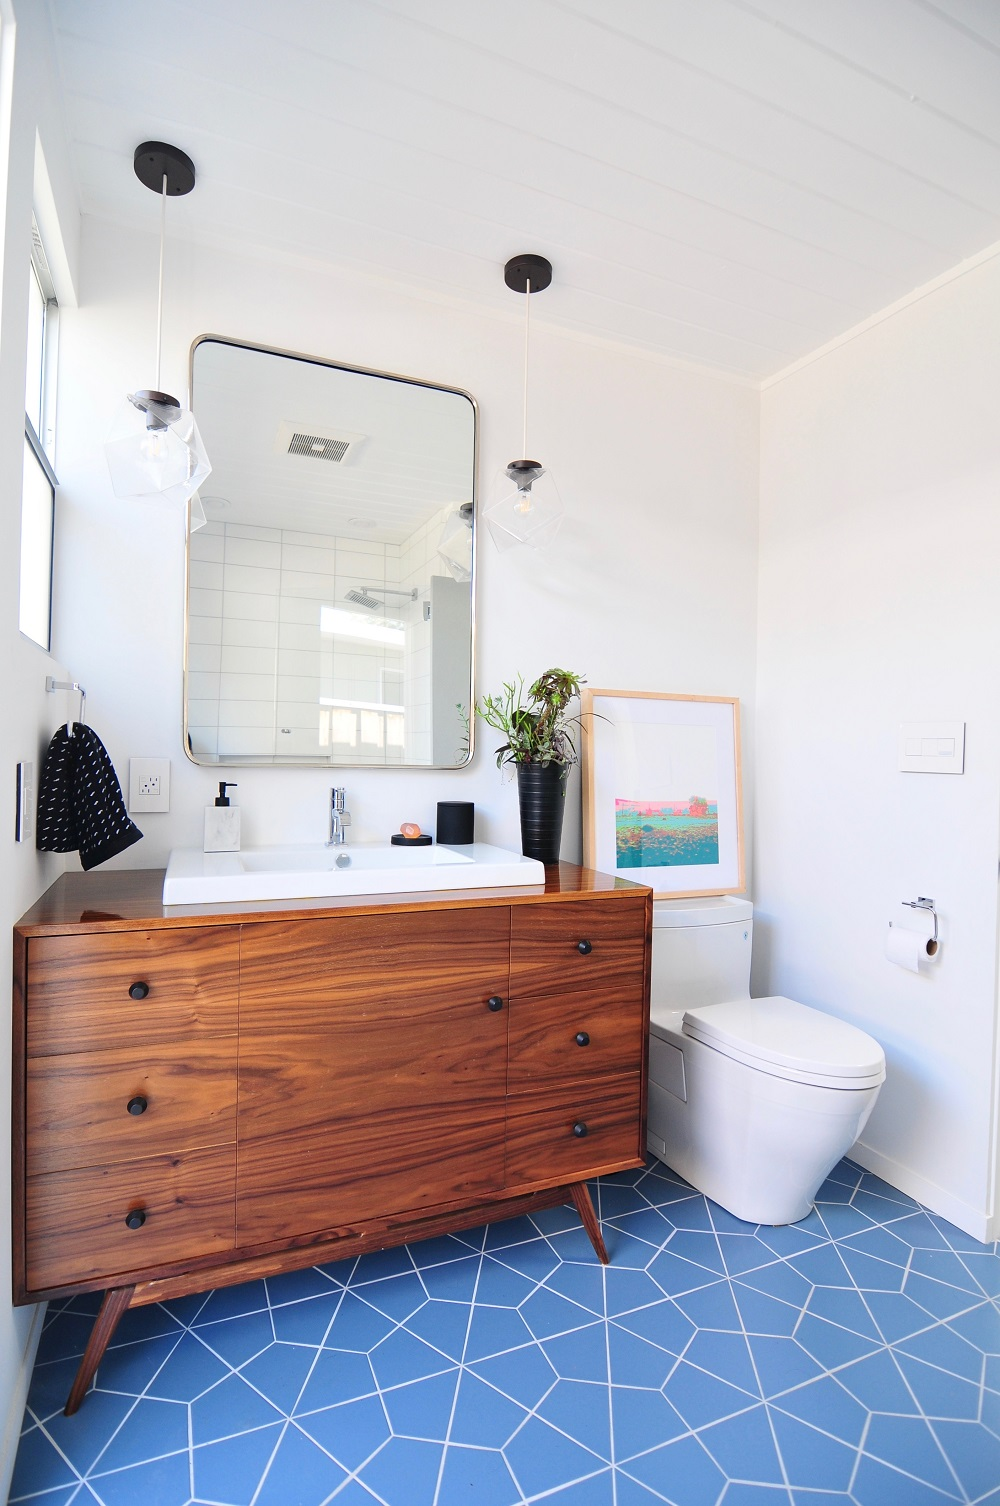 van5-1 Neat corner bathroom vanity ideas that you will find useful